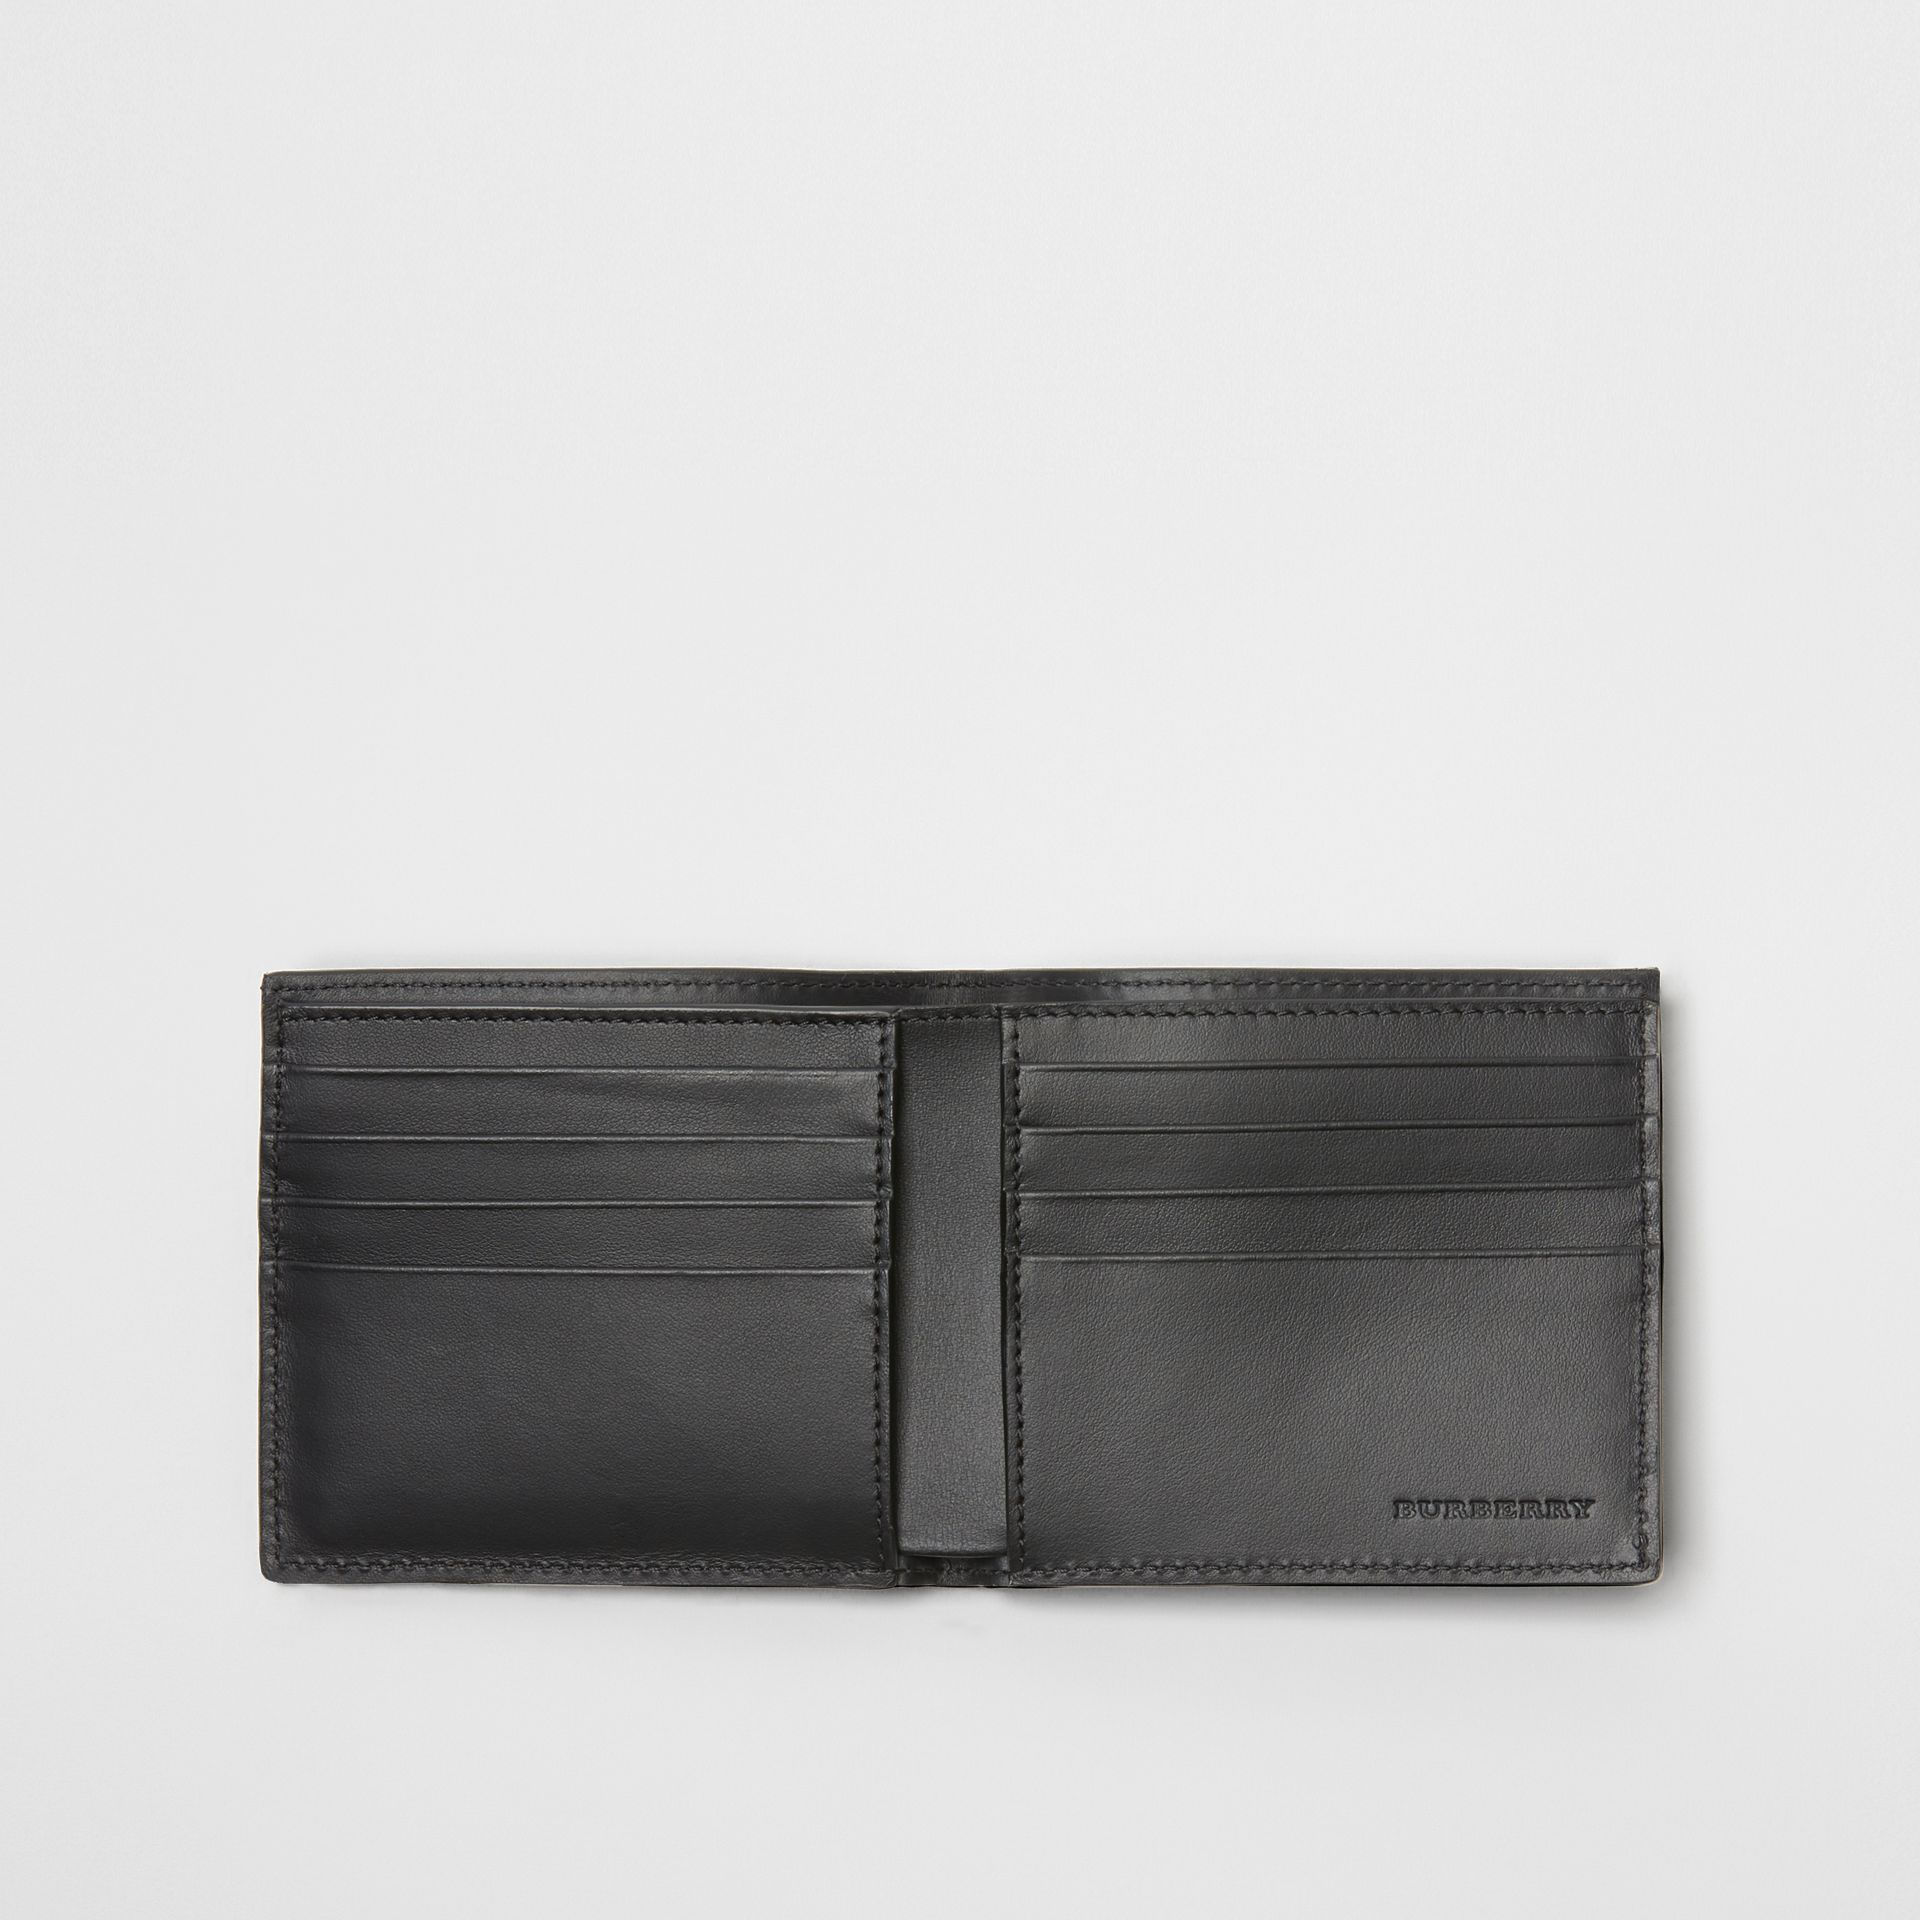 Perforated Check Leather International Bifold Wallet in Black - Men | Burberry Canada - gallery image 2